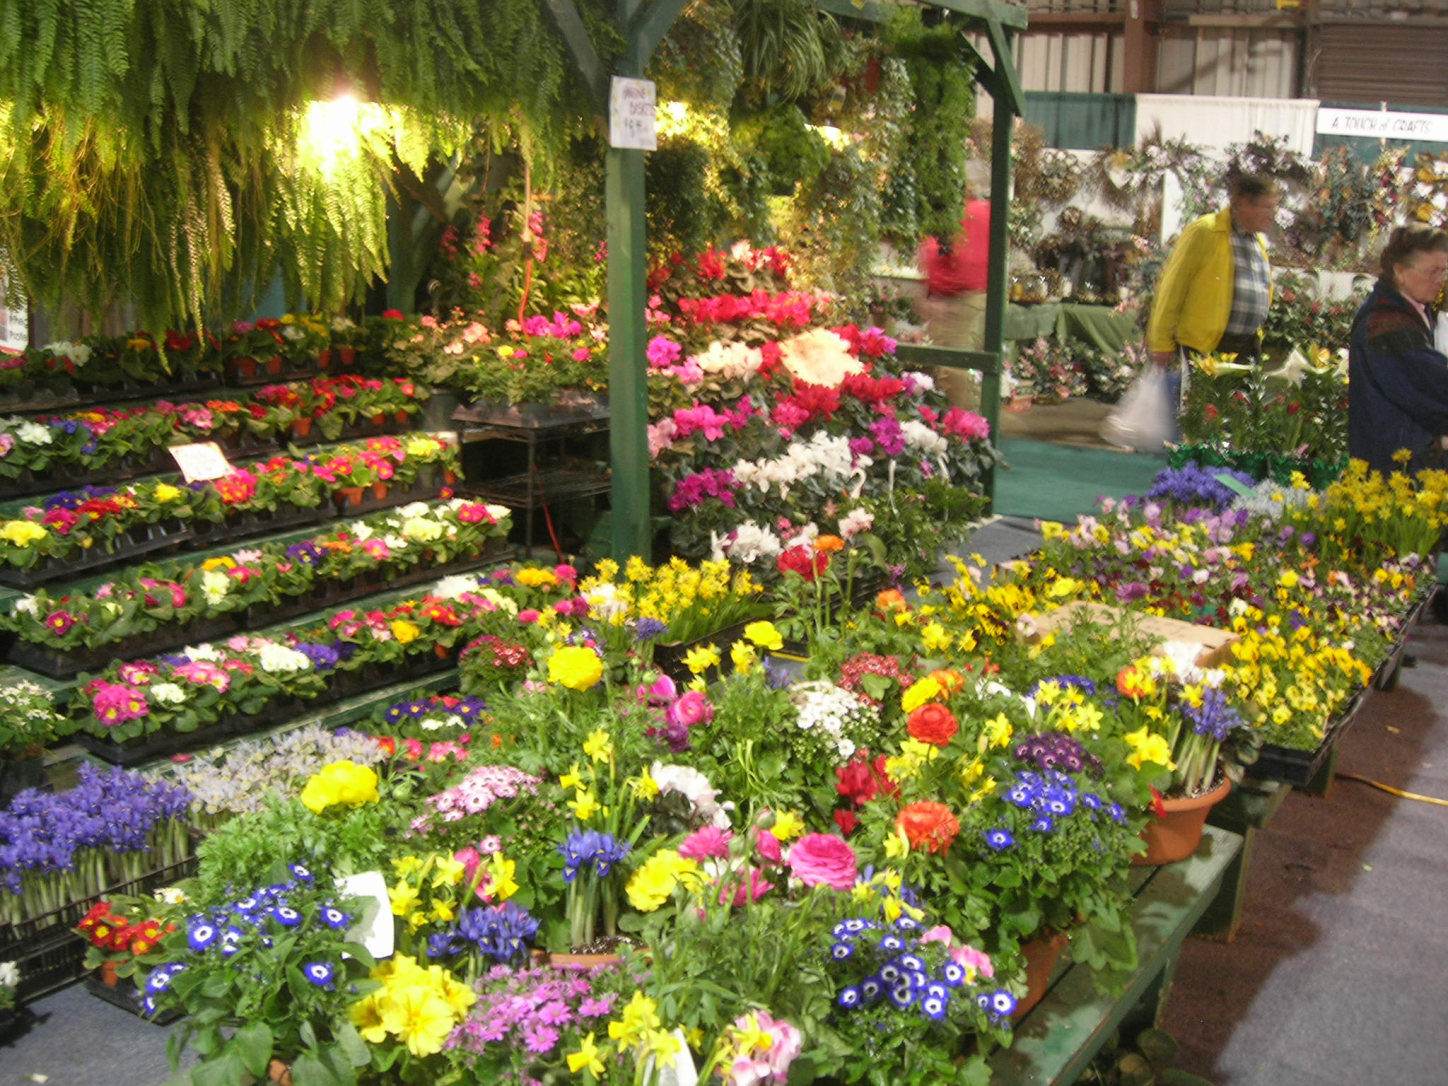 home and garden show timonium md - Home And Garden Home Giveaway